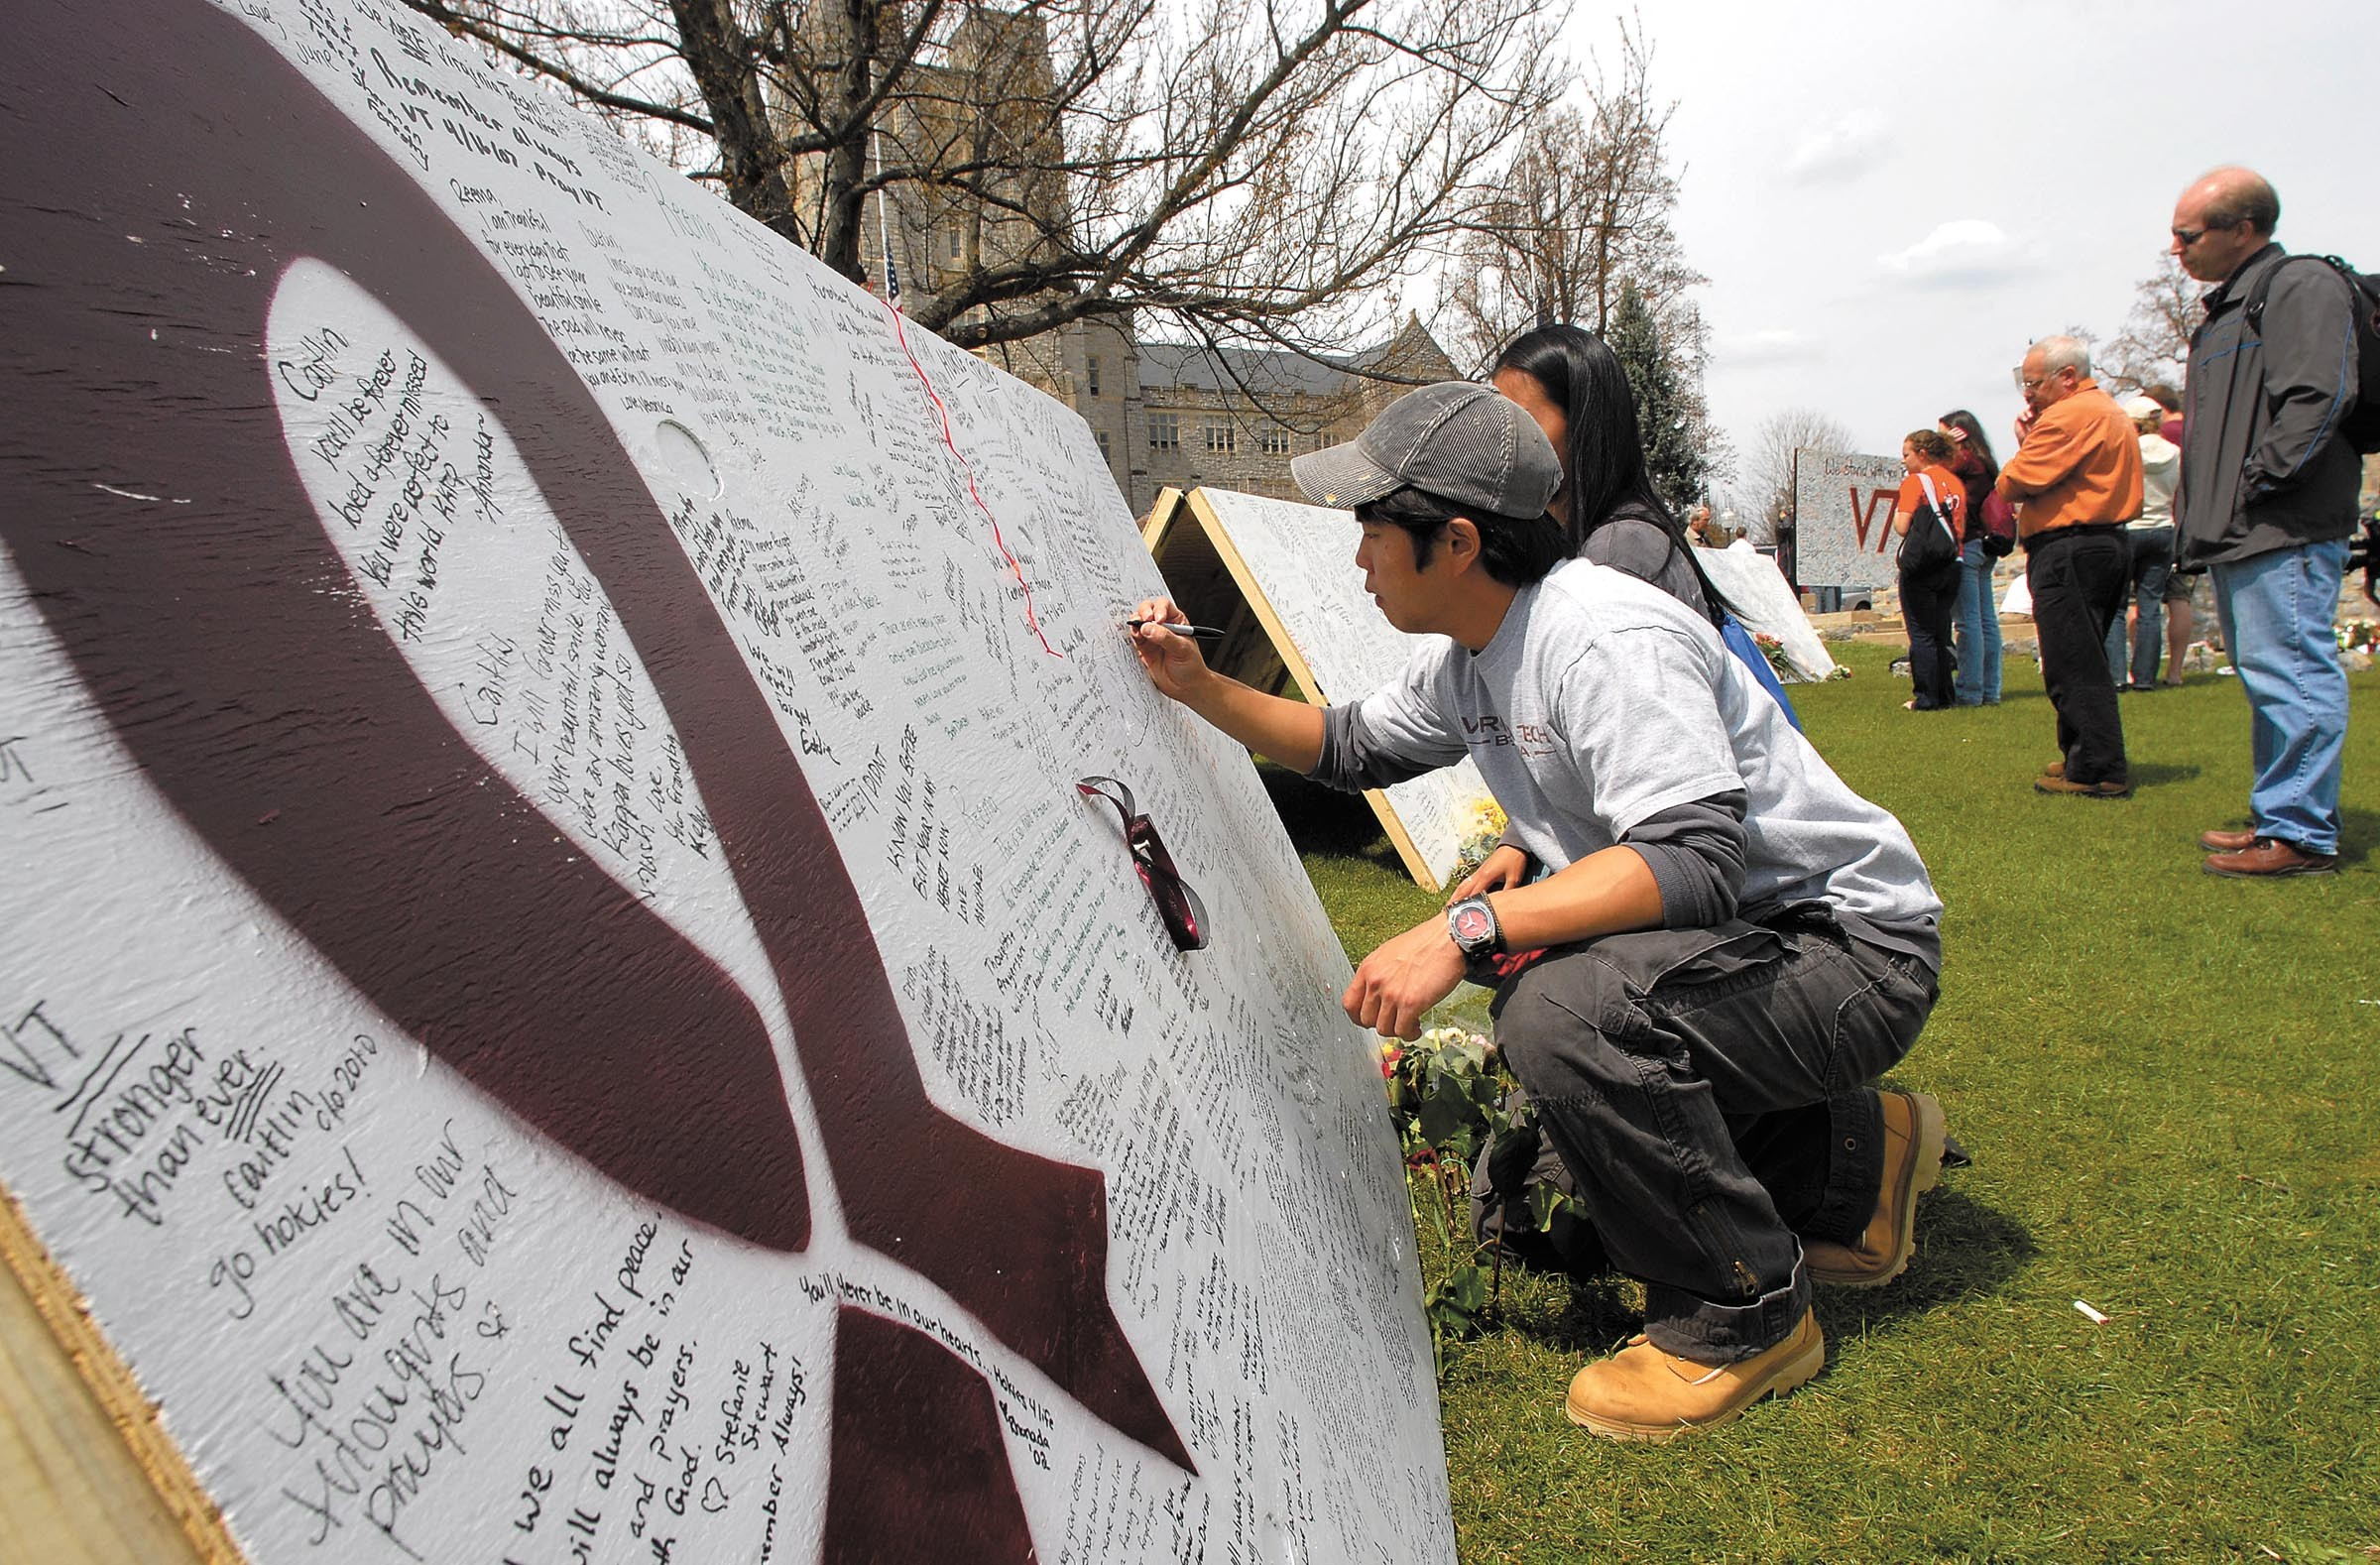 Simon Chang, a 2006 graduate of Virginia Tech, leaves his condolences on a memorial after 32 people were shot and killed there in April 2007. The tragedy prompted calls for improvements to the mental health system. - SCOTT ELMQUIST